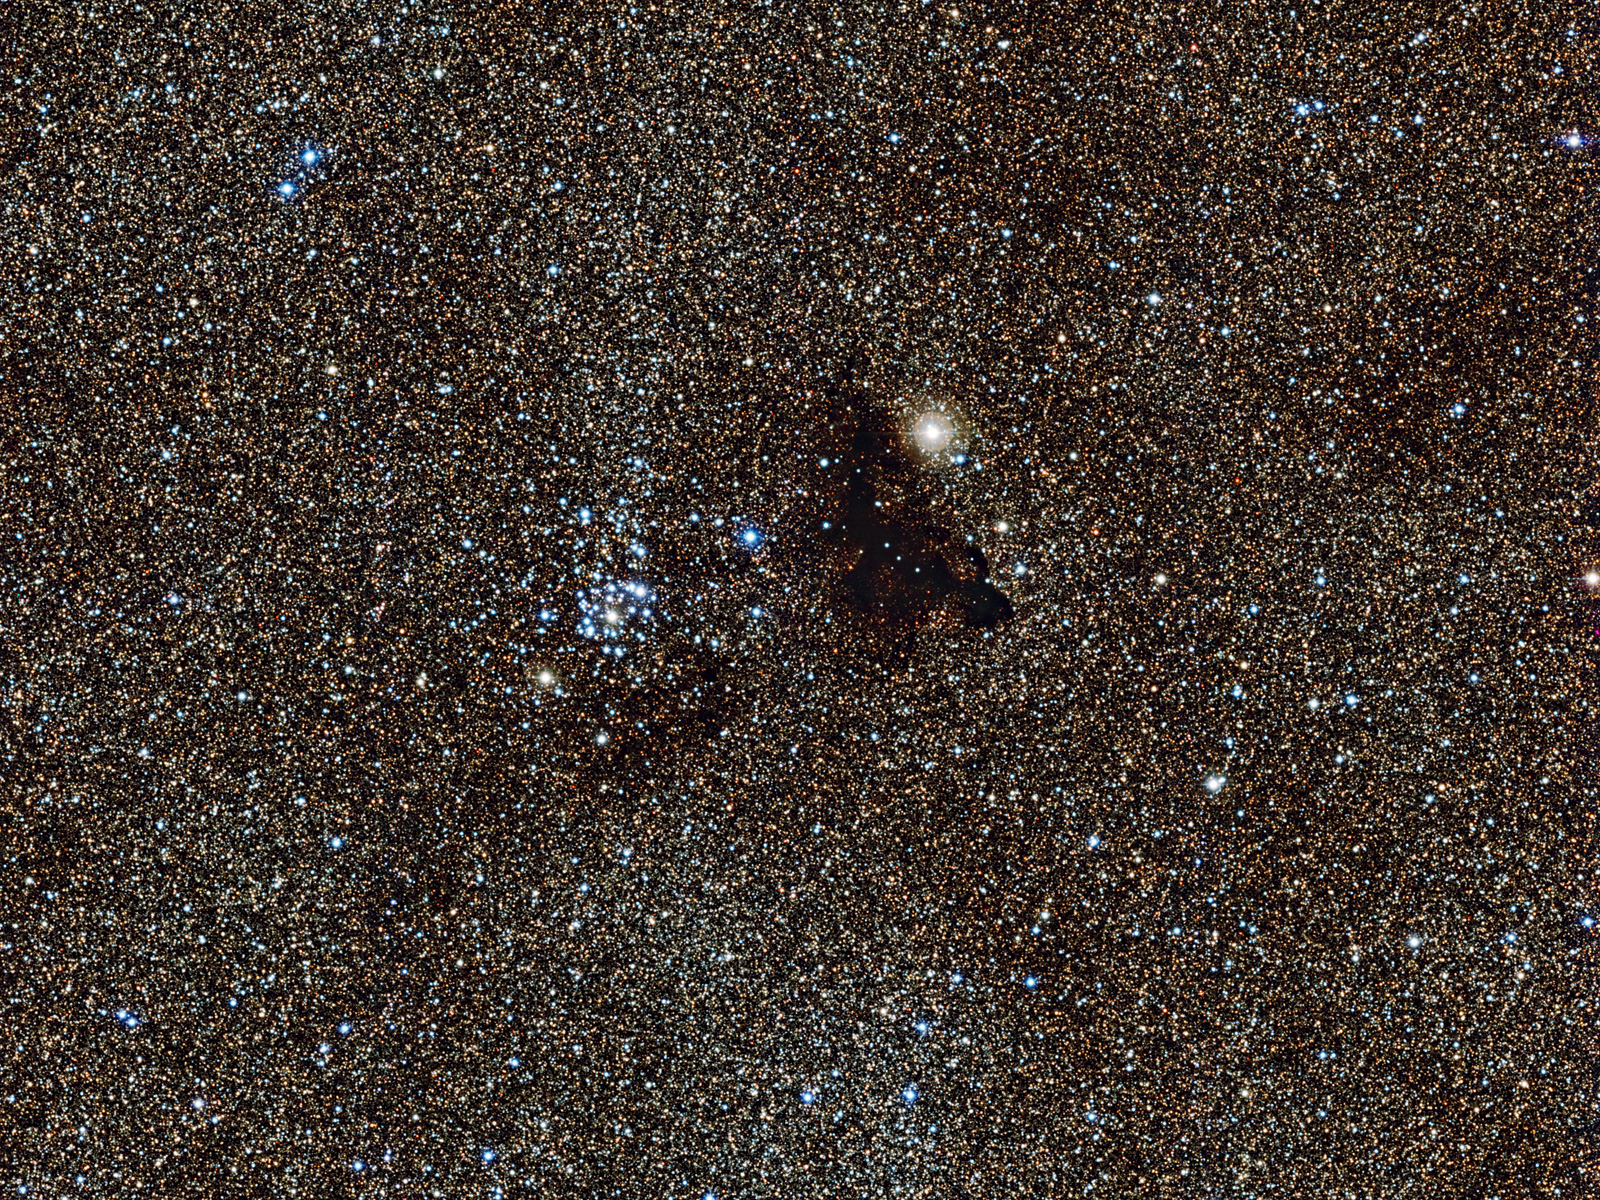 Star Cluster NGC 6520 and Dark Cloud Barnard 86 Space Wallpaper 1600